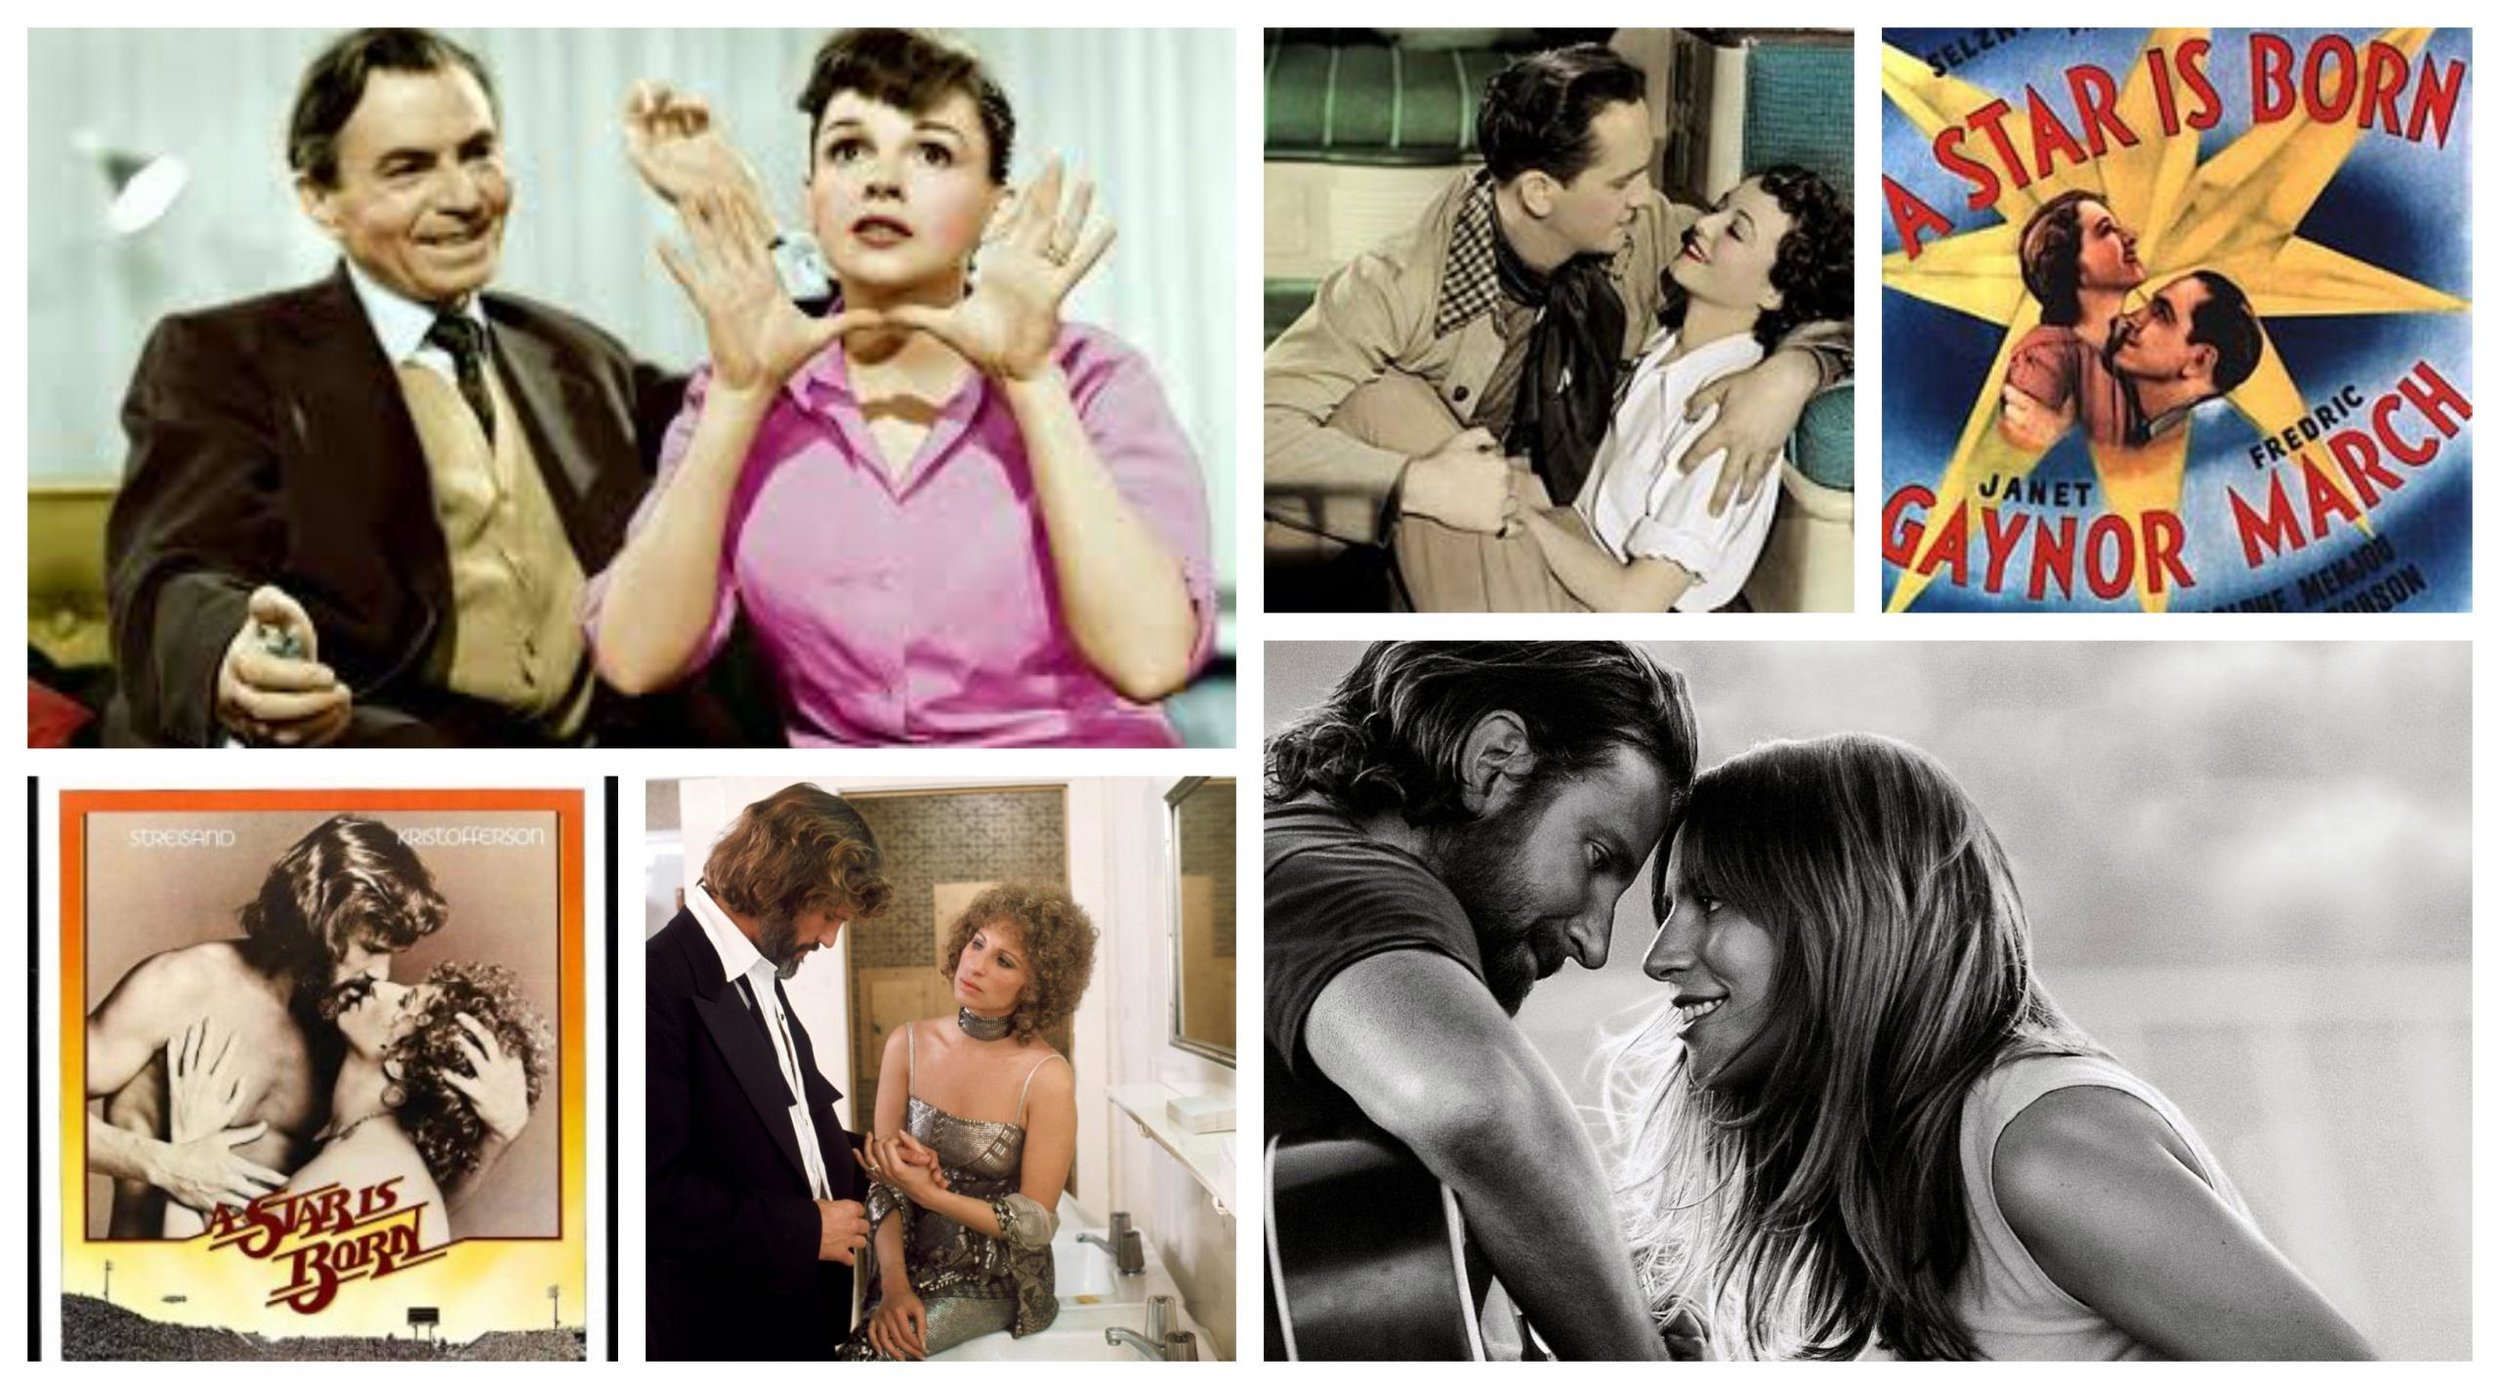 a star is born - collage - in review.jpg